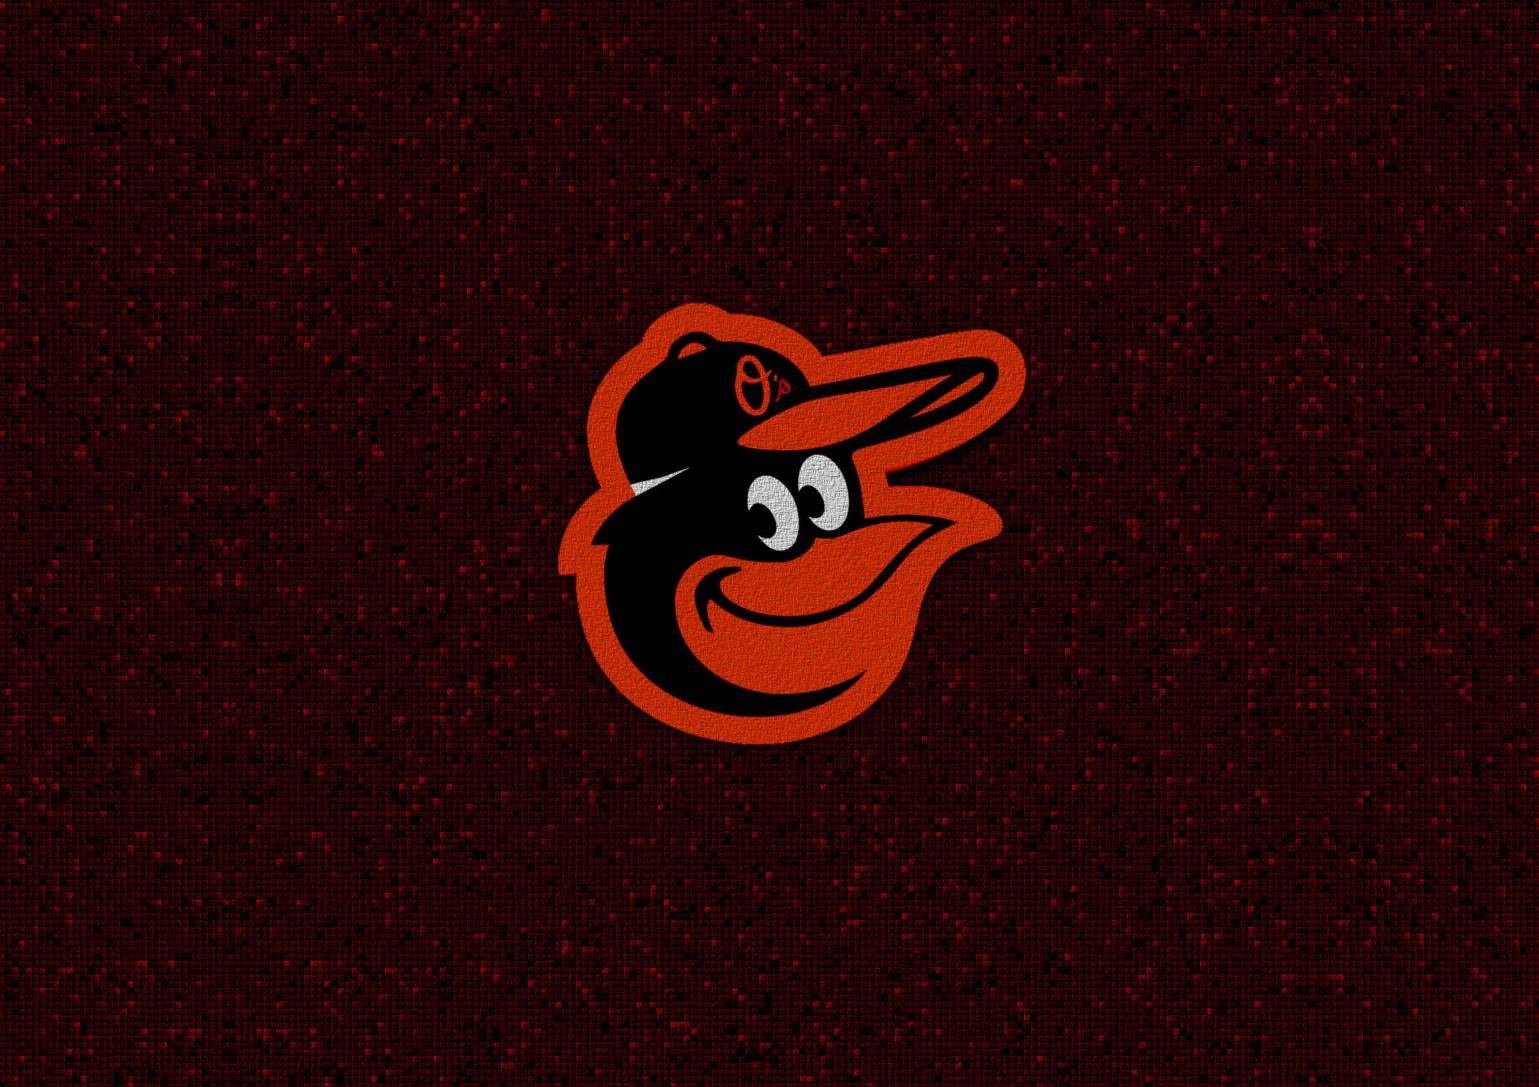 WALLPAPER] Baltimore Orioles Ravens Wallp Android Development 1539x1087